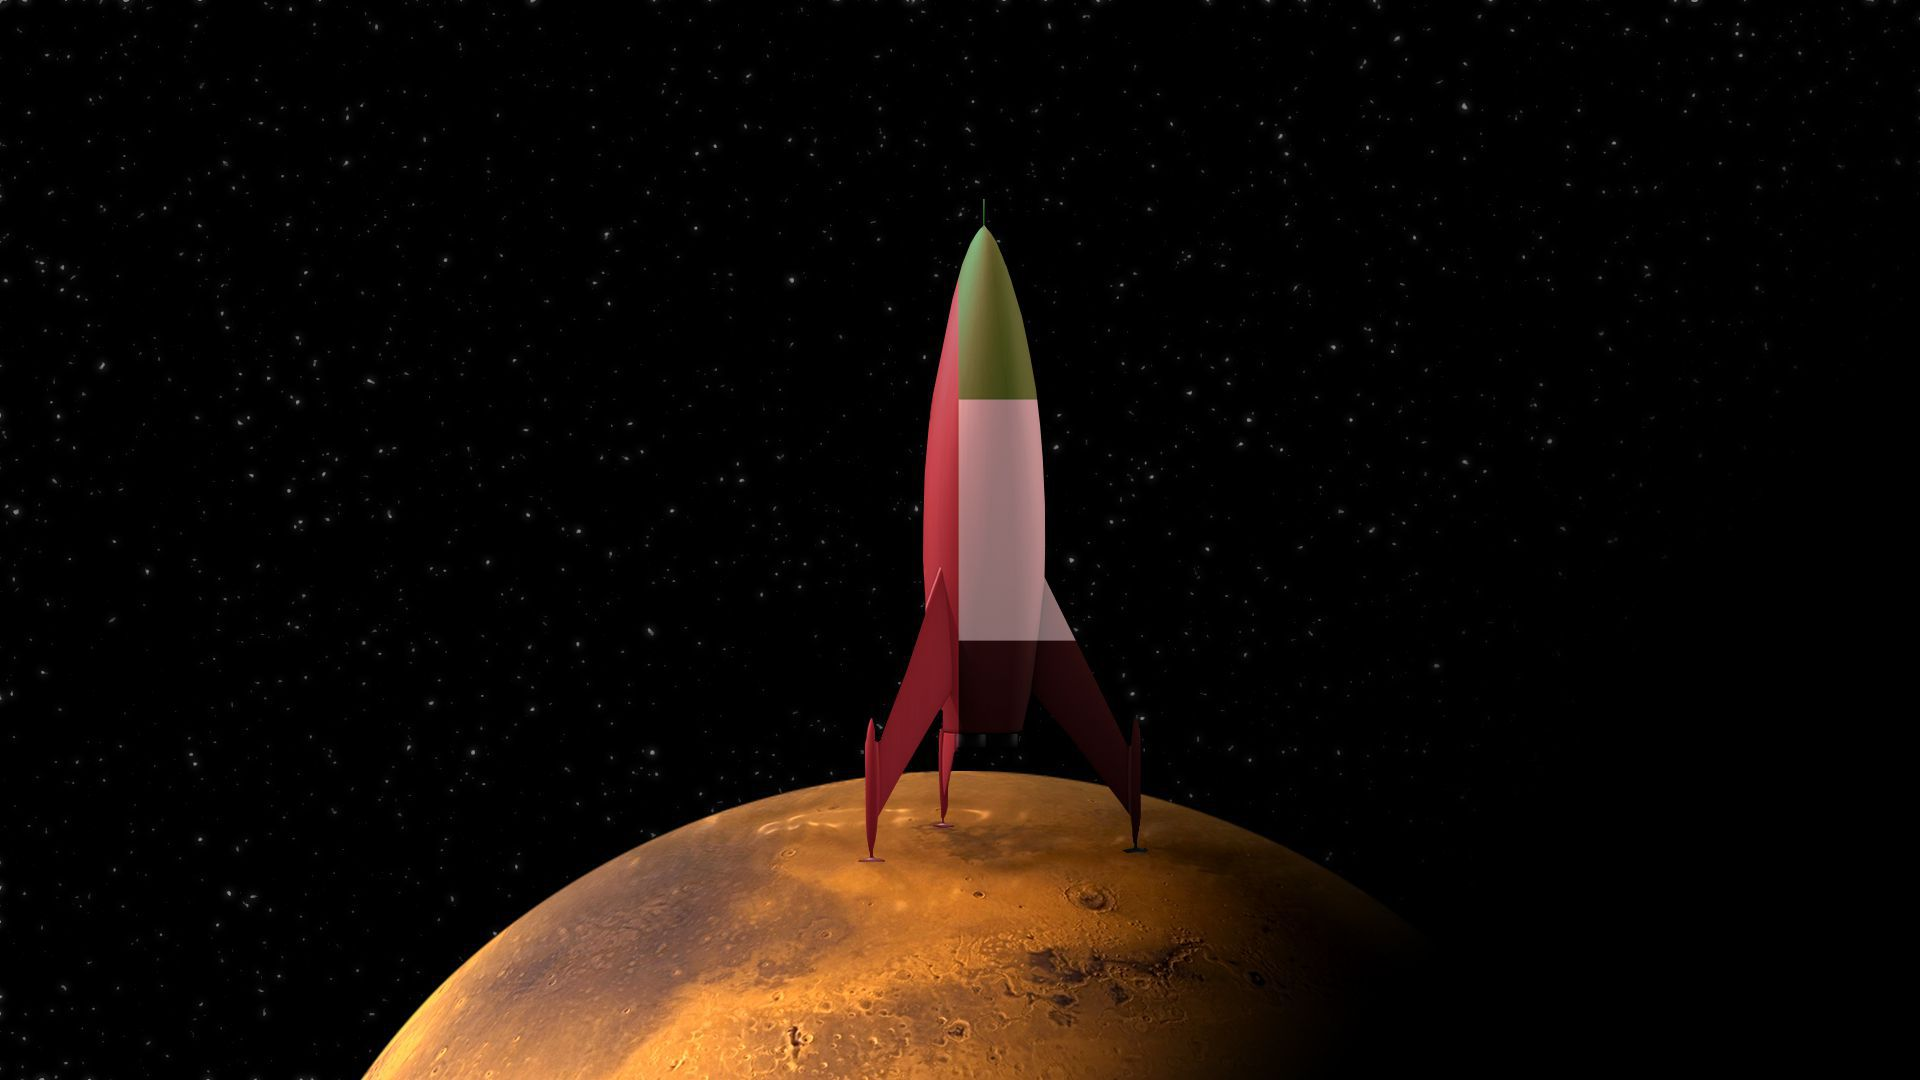 A rocket painted like the UAE flag on mars.